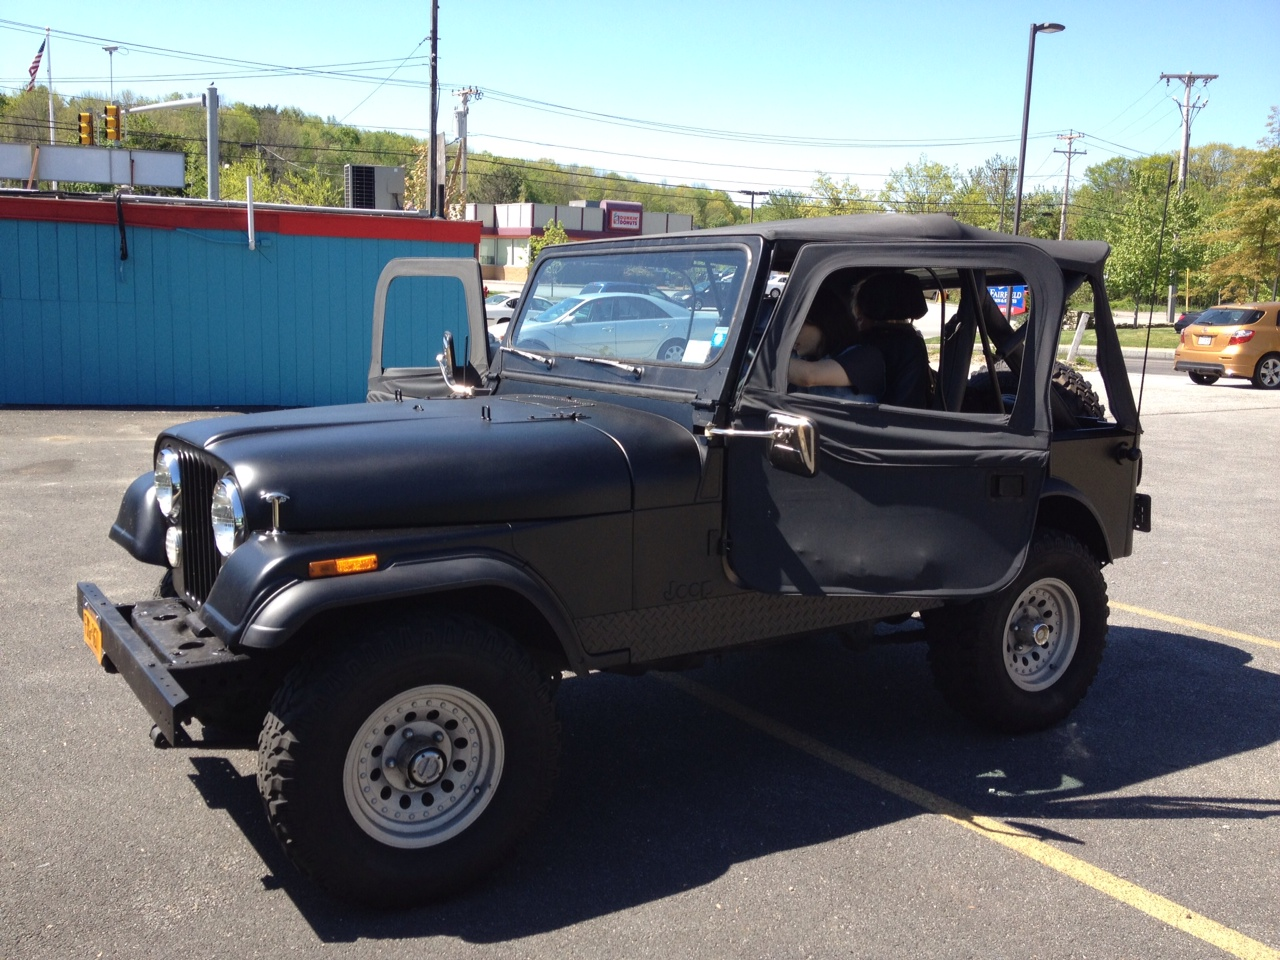 85 Cj7 Need Help W Electrical Not Starting Caused By Me Starter Wiring Diagram For 1985 Jeep Pick Up Thumb